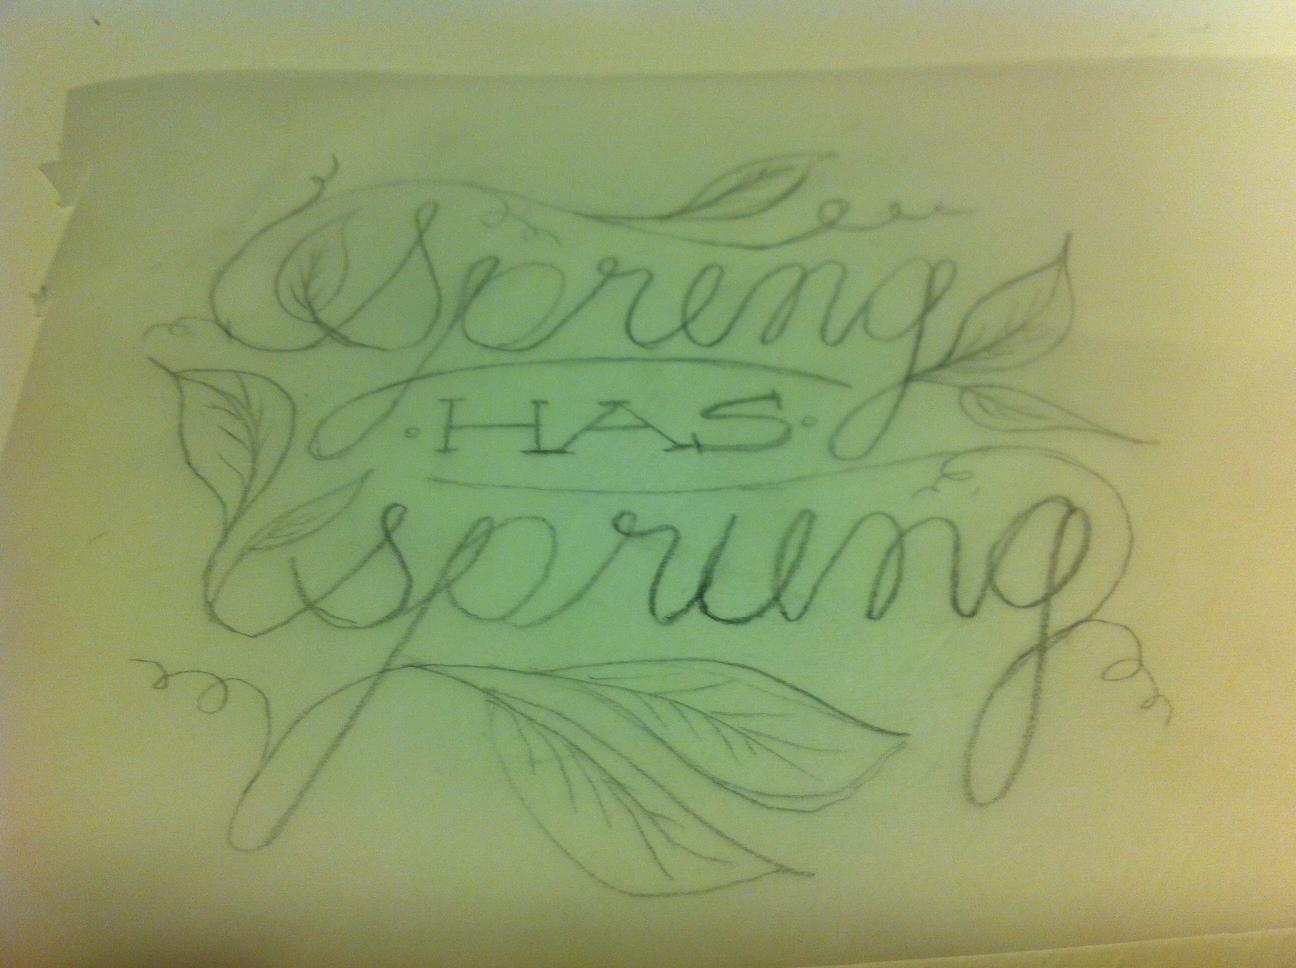 Spring has Sprung - image 2 - student project